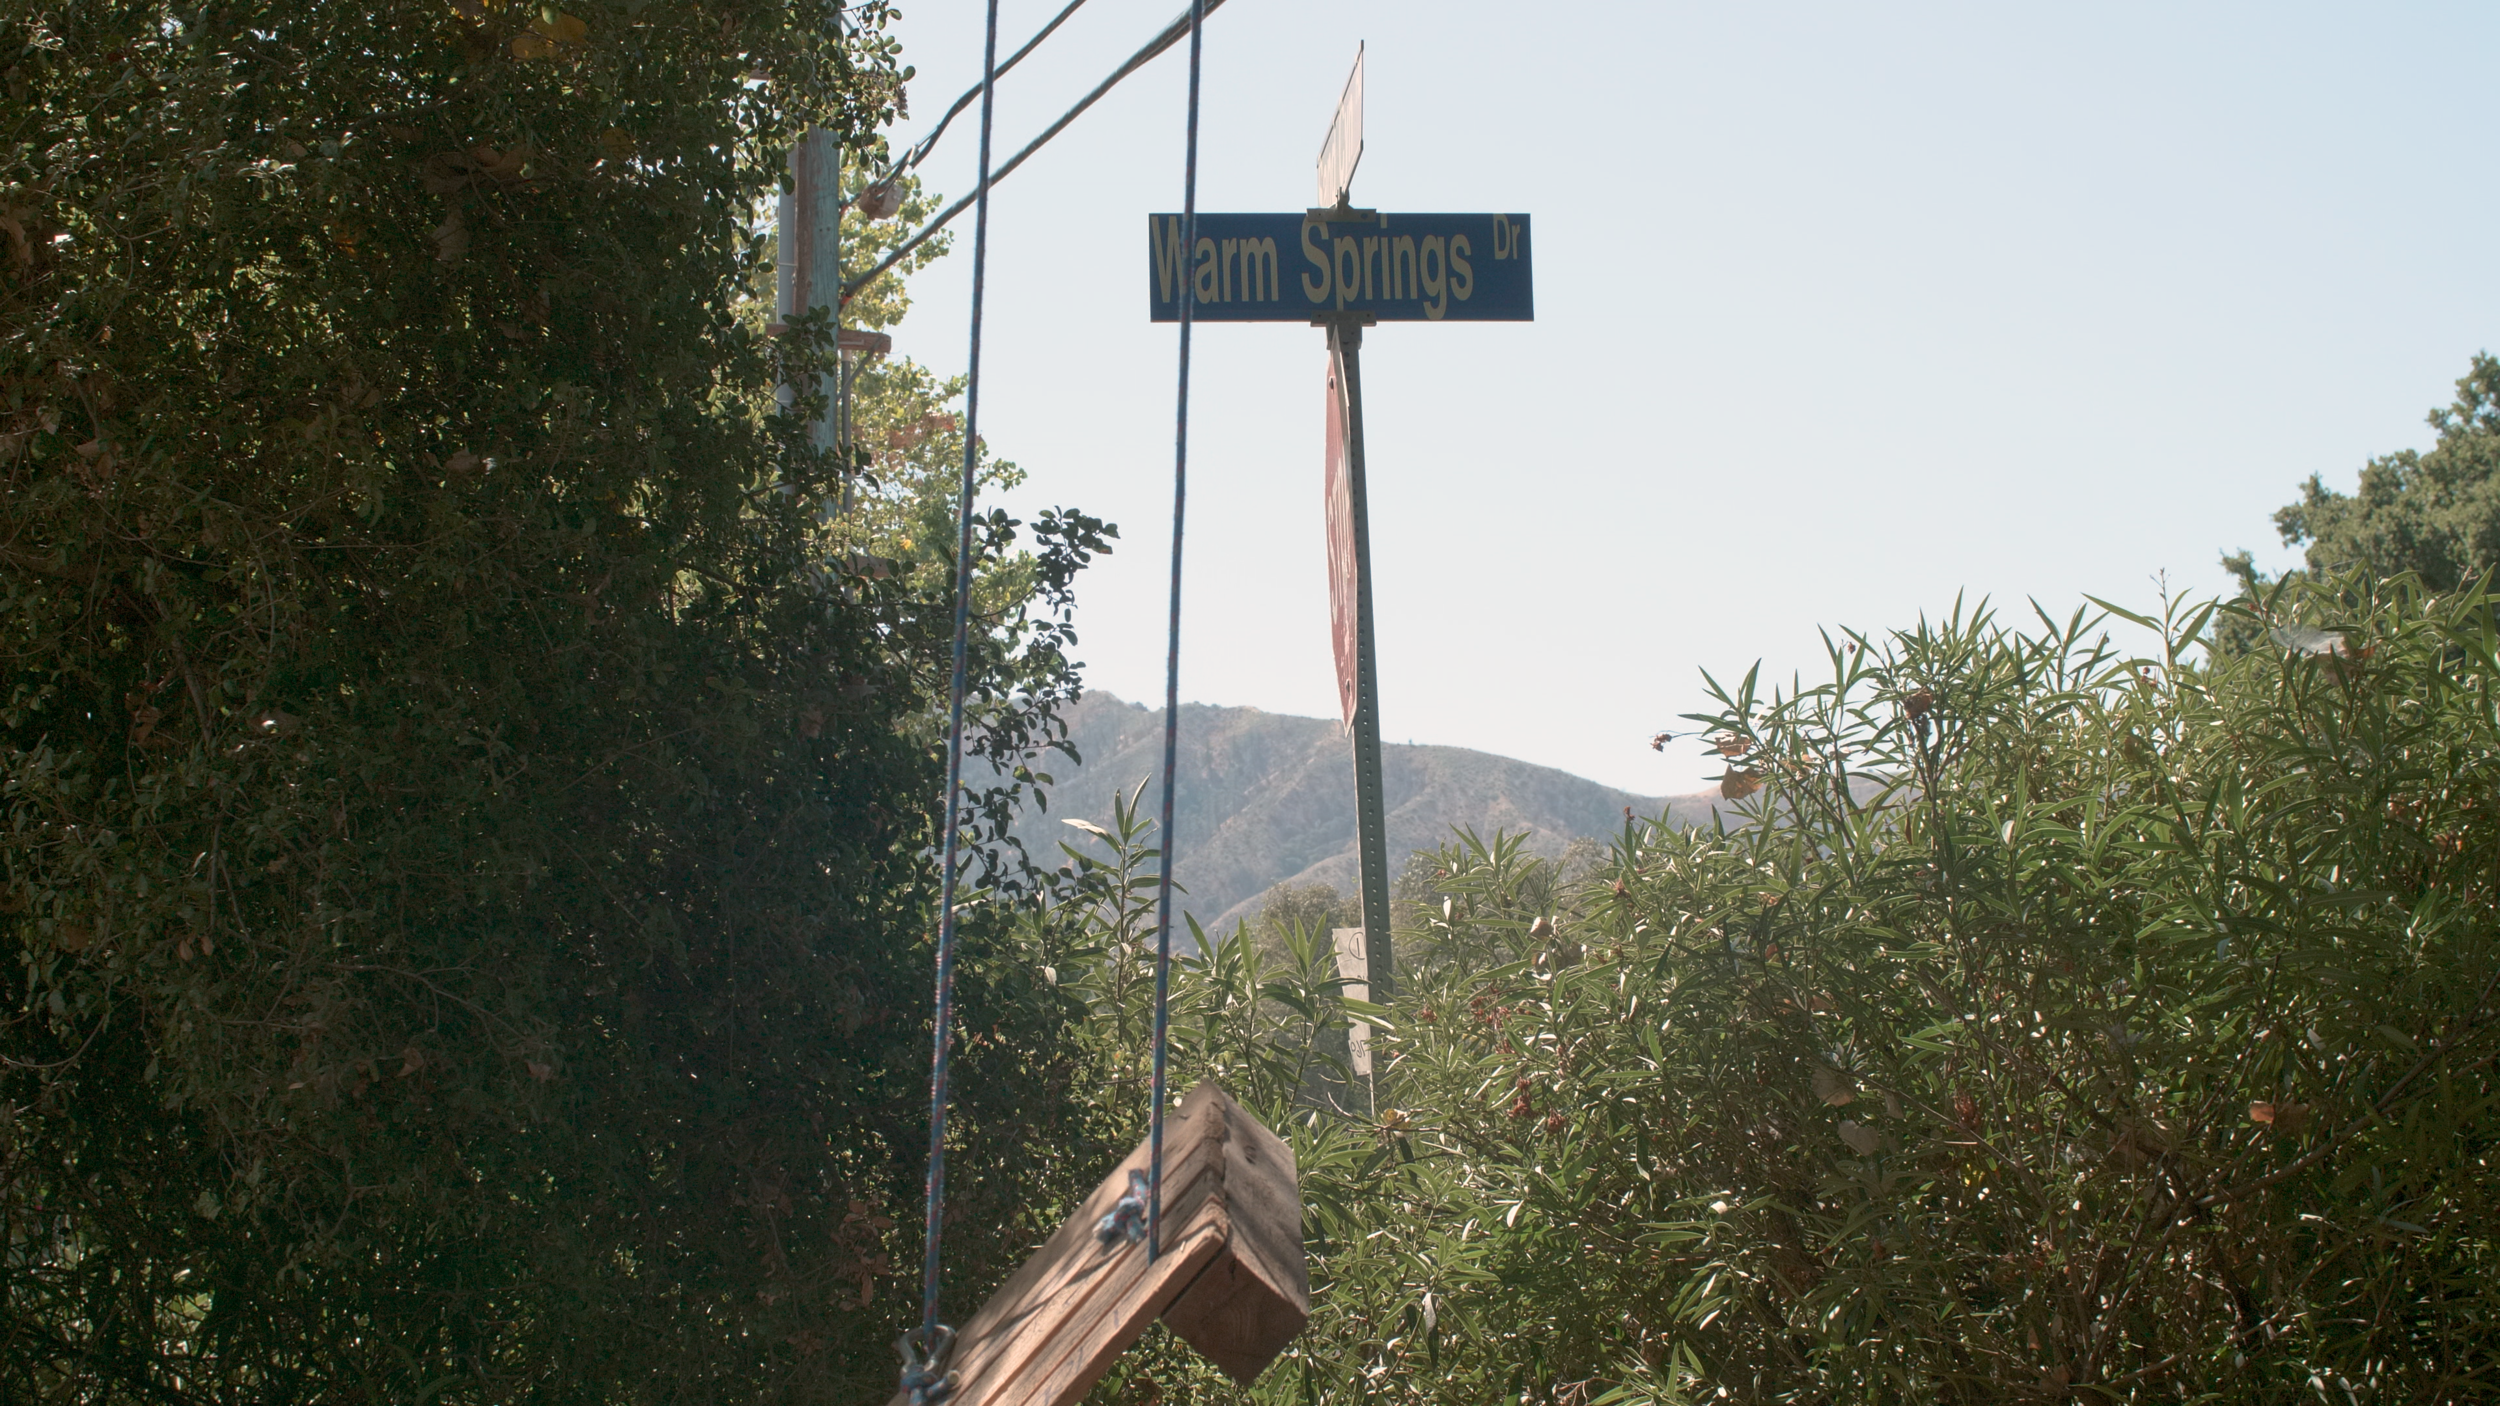 The swing set next to the street sign